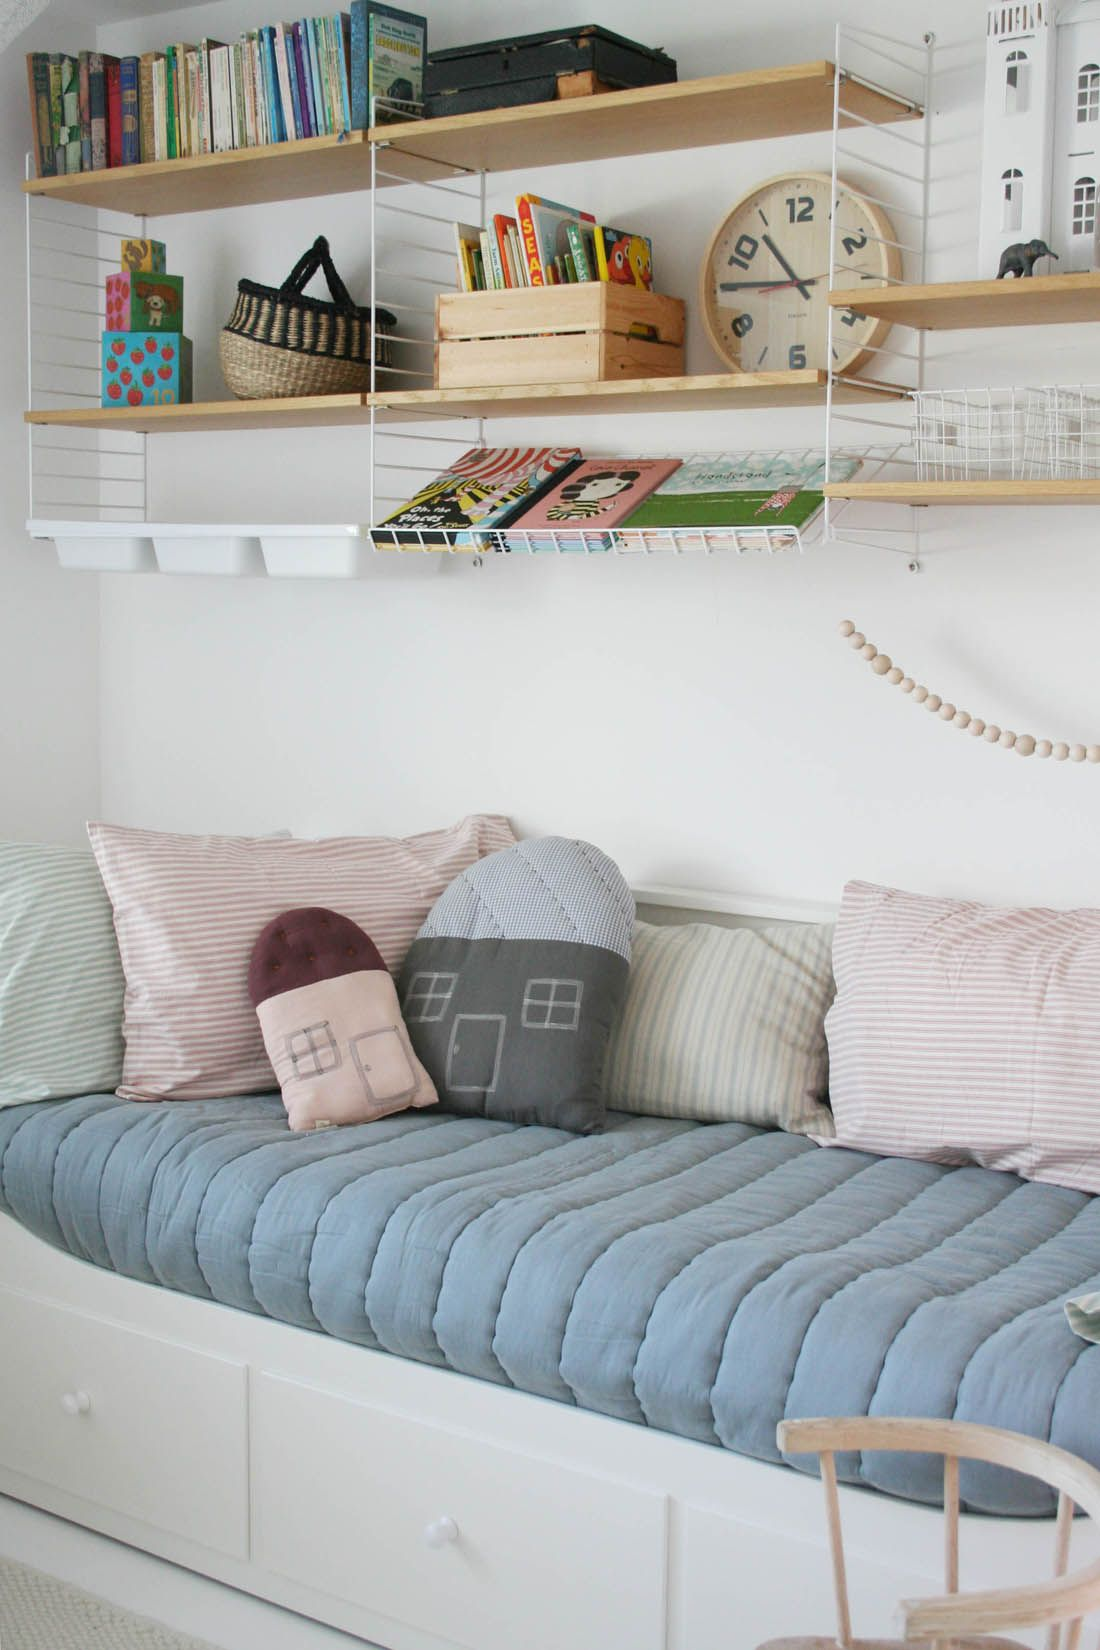 Ikea Shelves Hemnes Daybed In A Boys Bedroom: IKEA Hemnes Day Bed And String Shelving